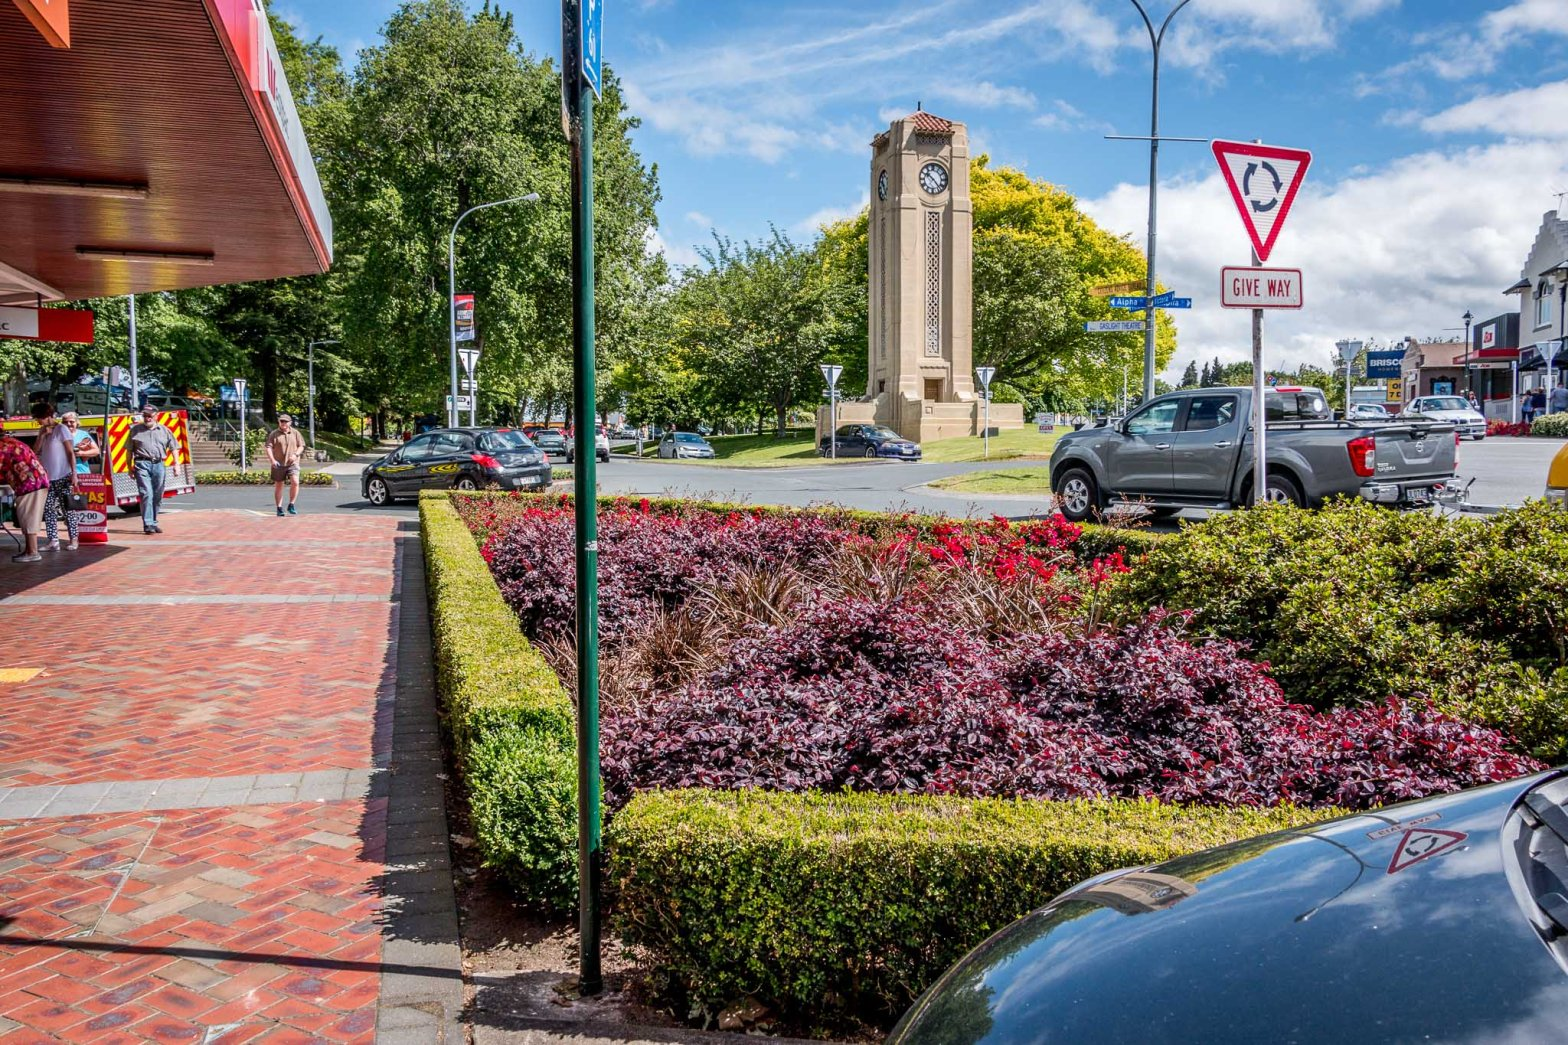 At the little roundabout Alpha, Victoria and Lake Cambridge New Zealand